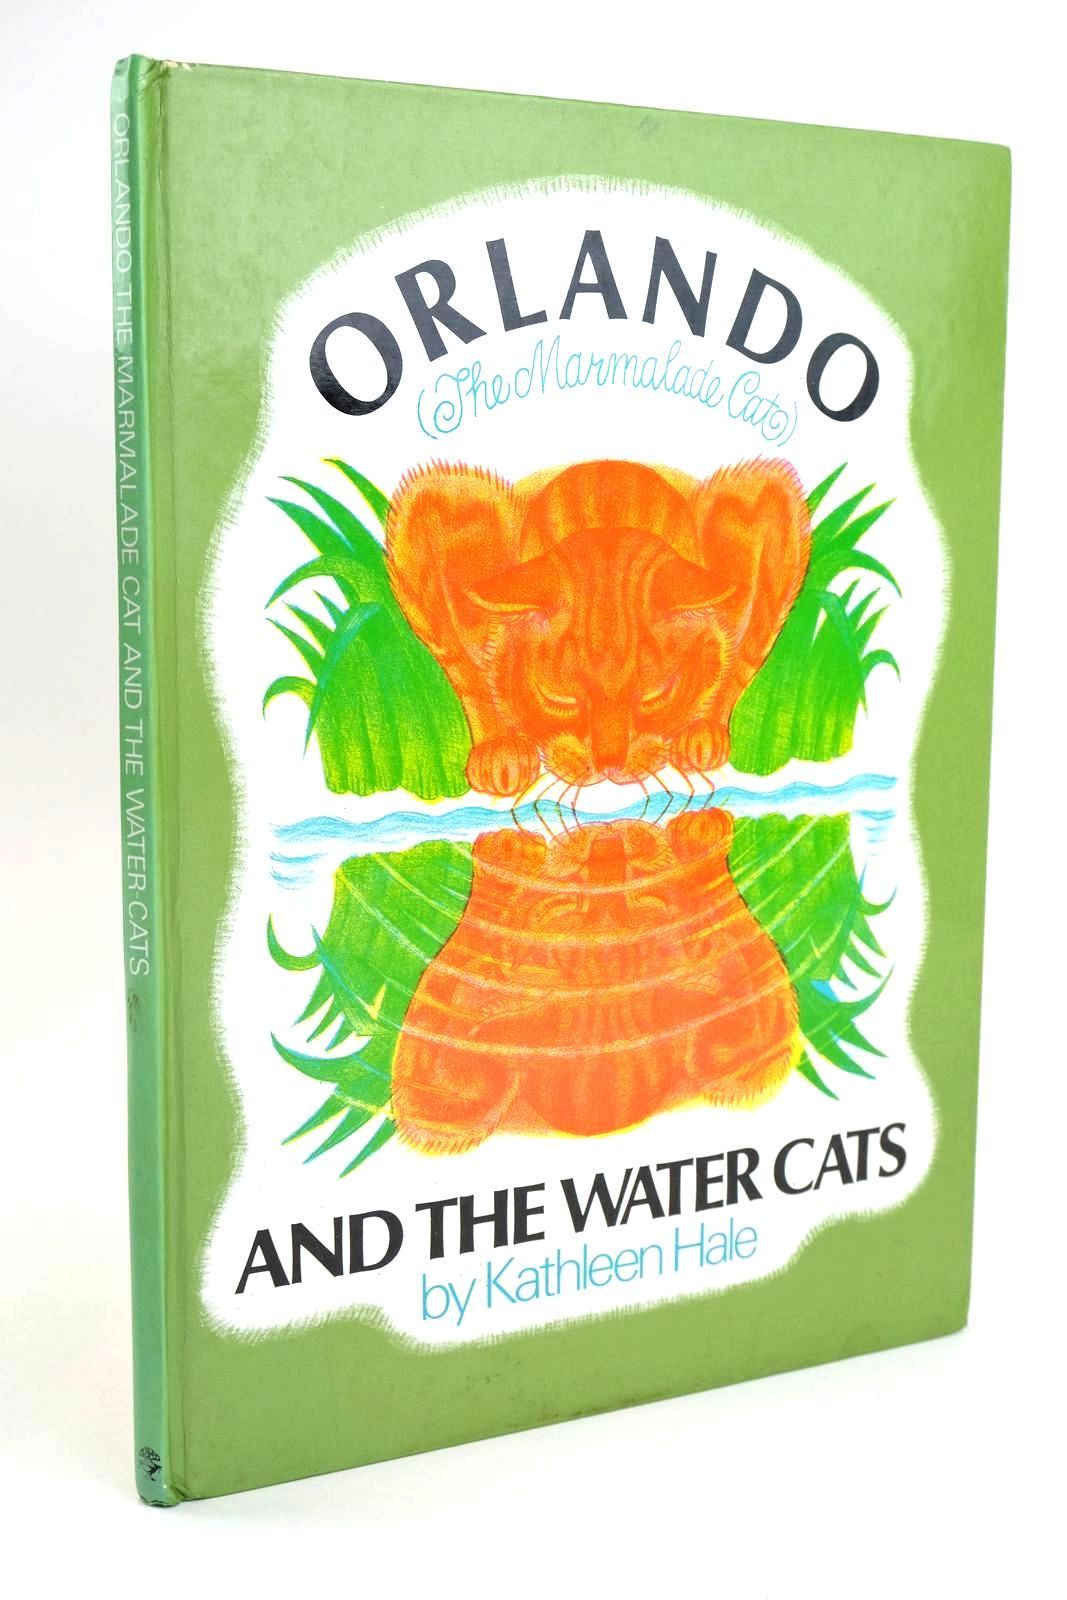 Photo of ORLANDO (THE MARMALADE CAT) AND THE WATER CATS written by Hale, Kathleen illustrated by Hale, Kathleen published by Jonathan Cape (STOCK CODE: 1319223)  for sale by Stella & Rose's Books